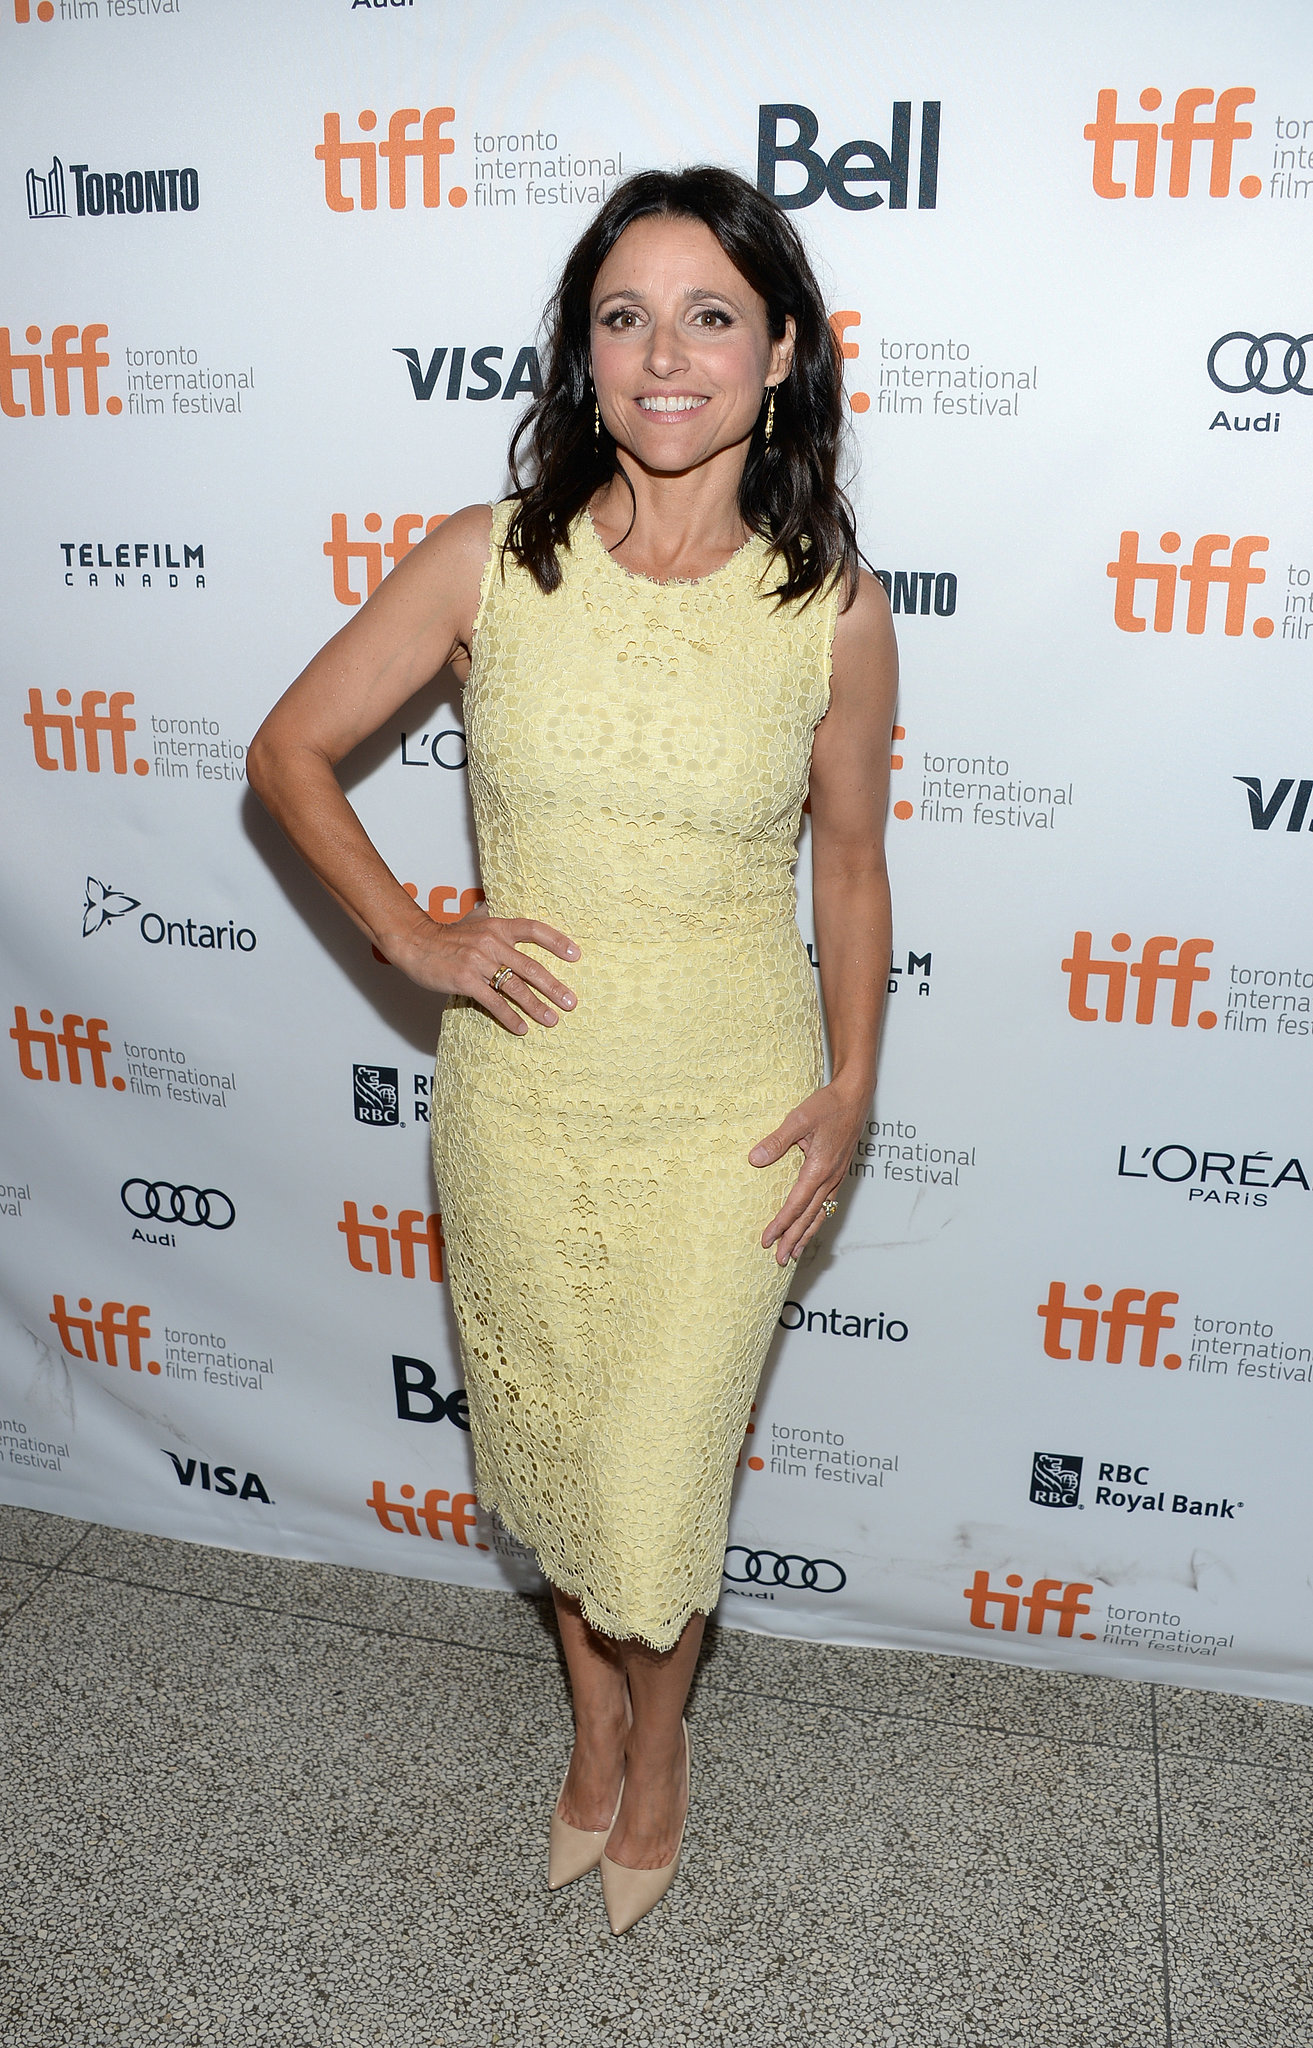 Julia Louis-Dreyfus wore a pale yellow dress at the Enough Said premiere.